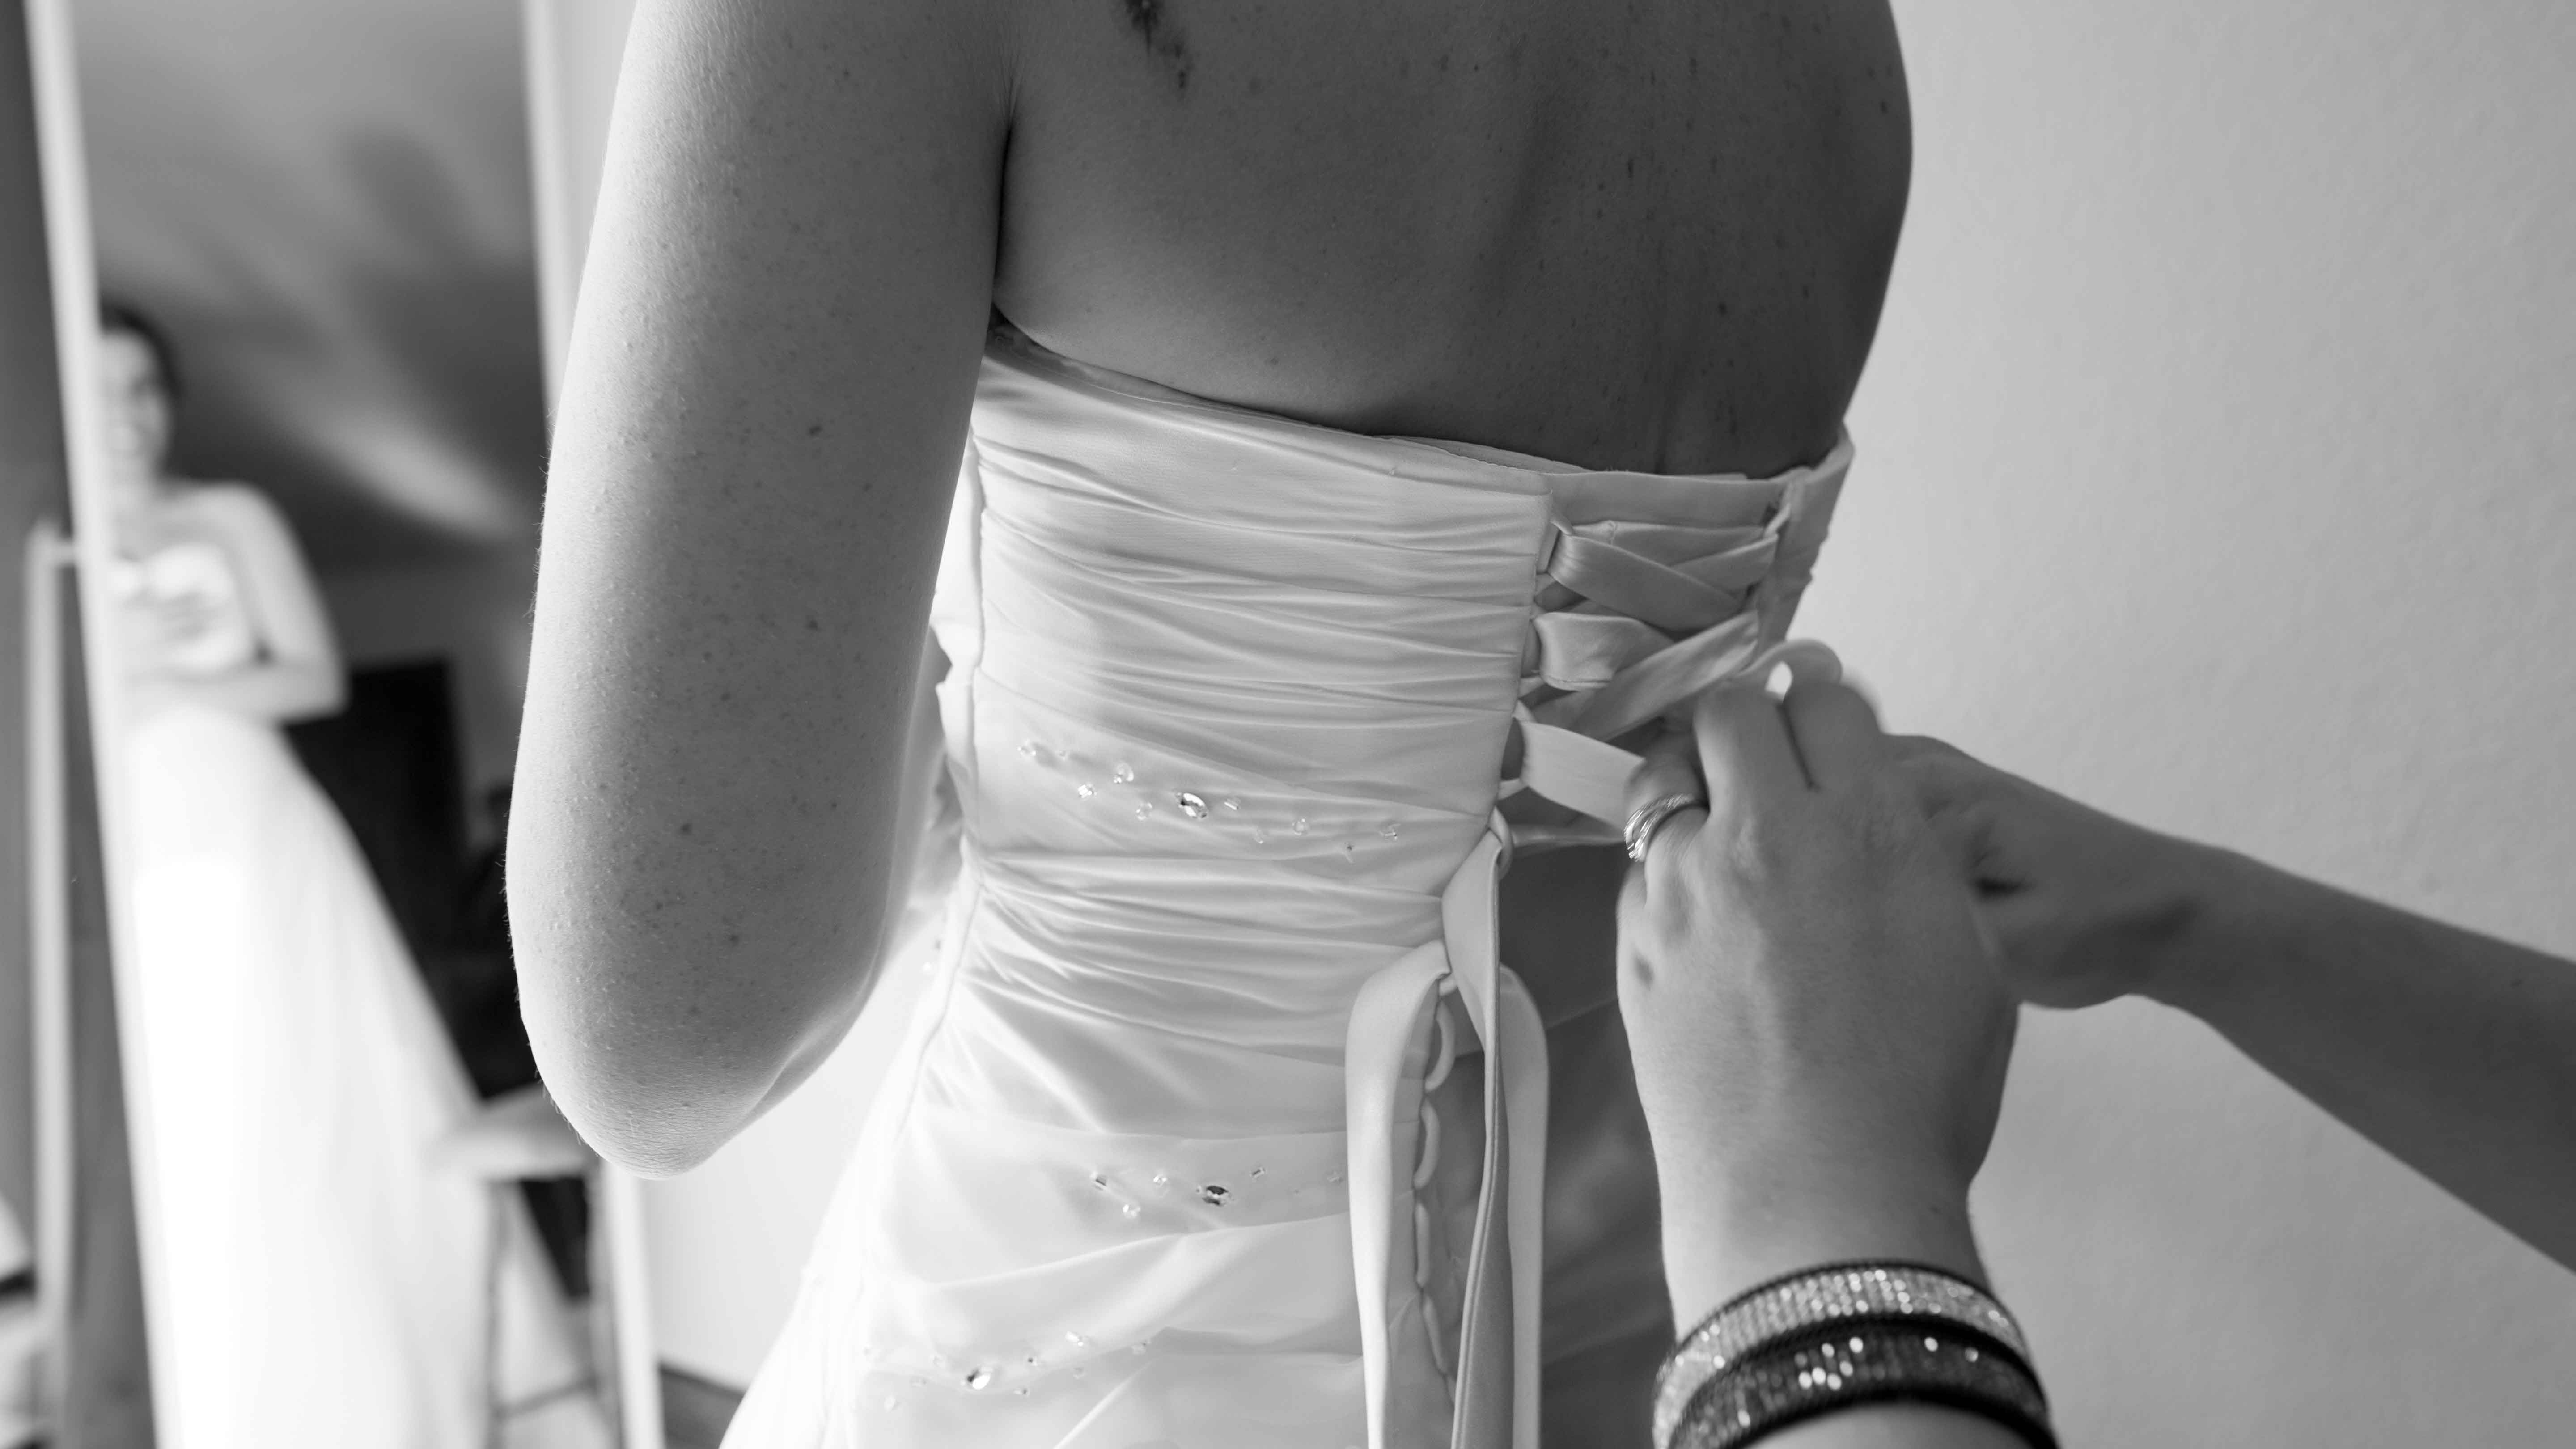 casament-preparatius-nuvia-vestit-esquena